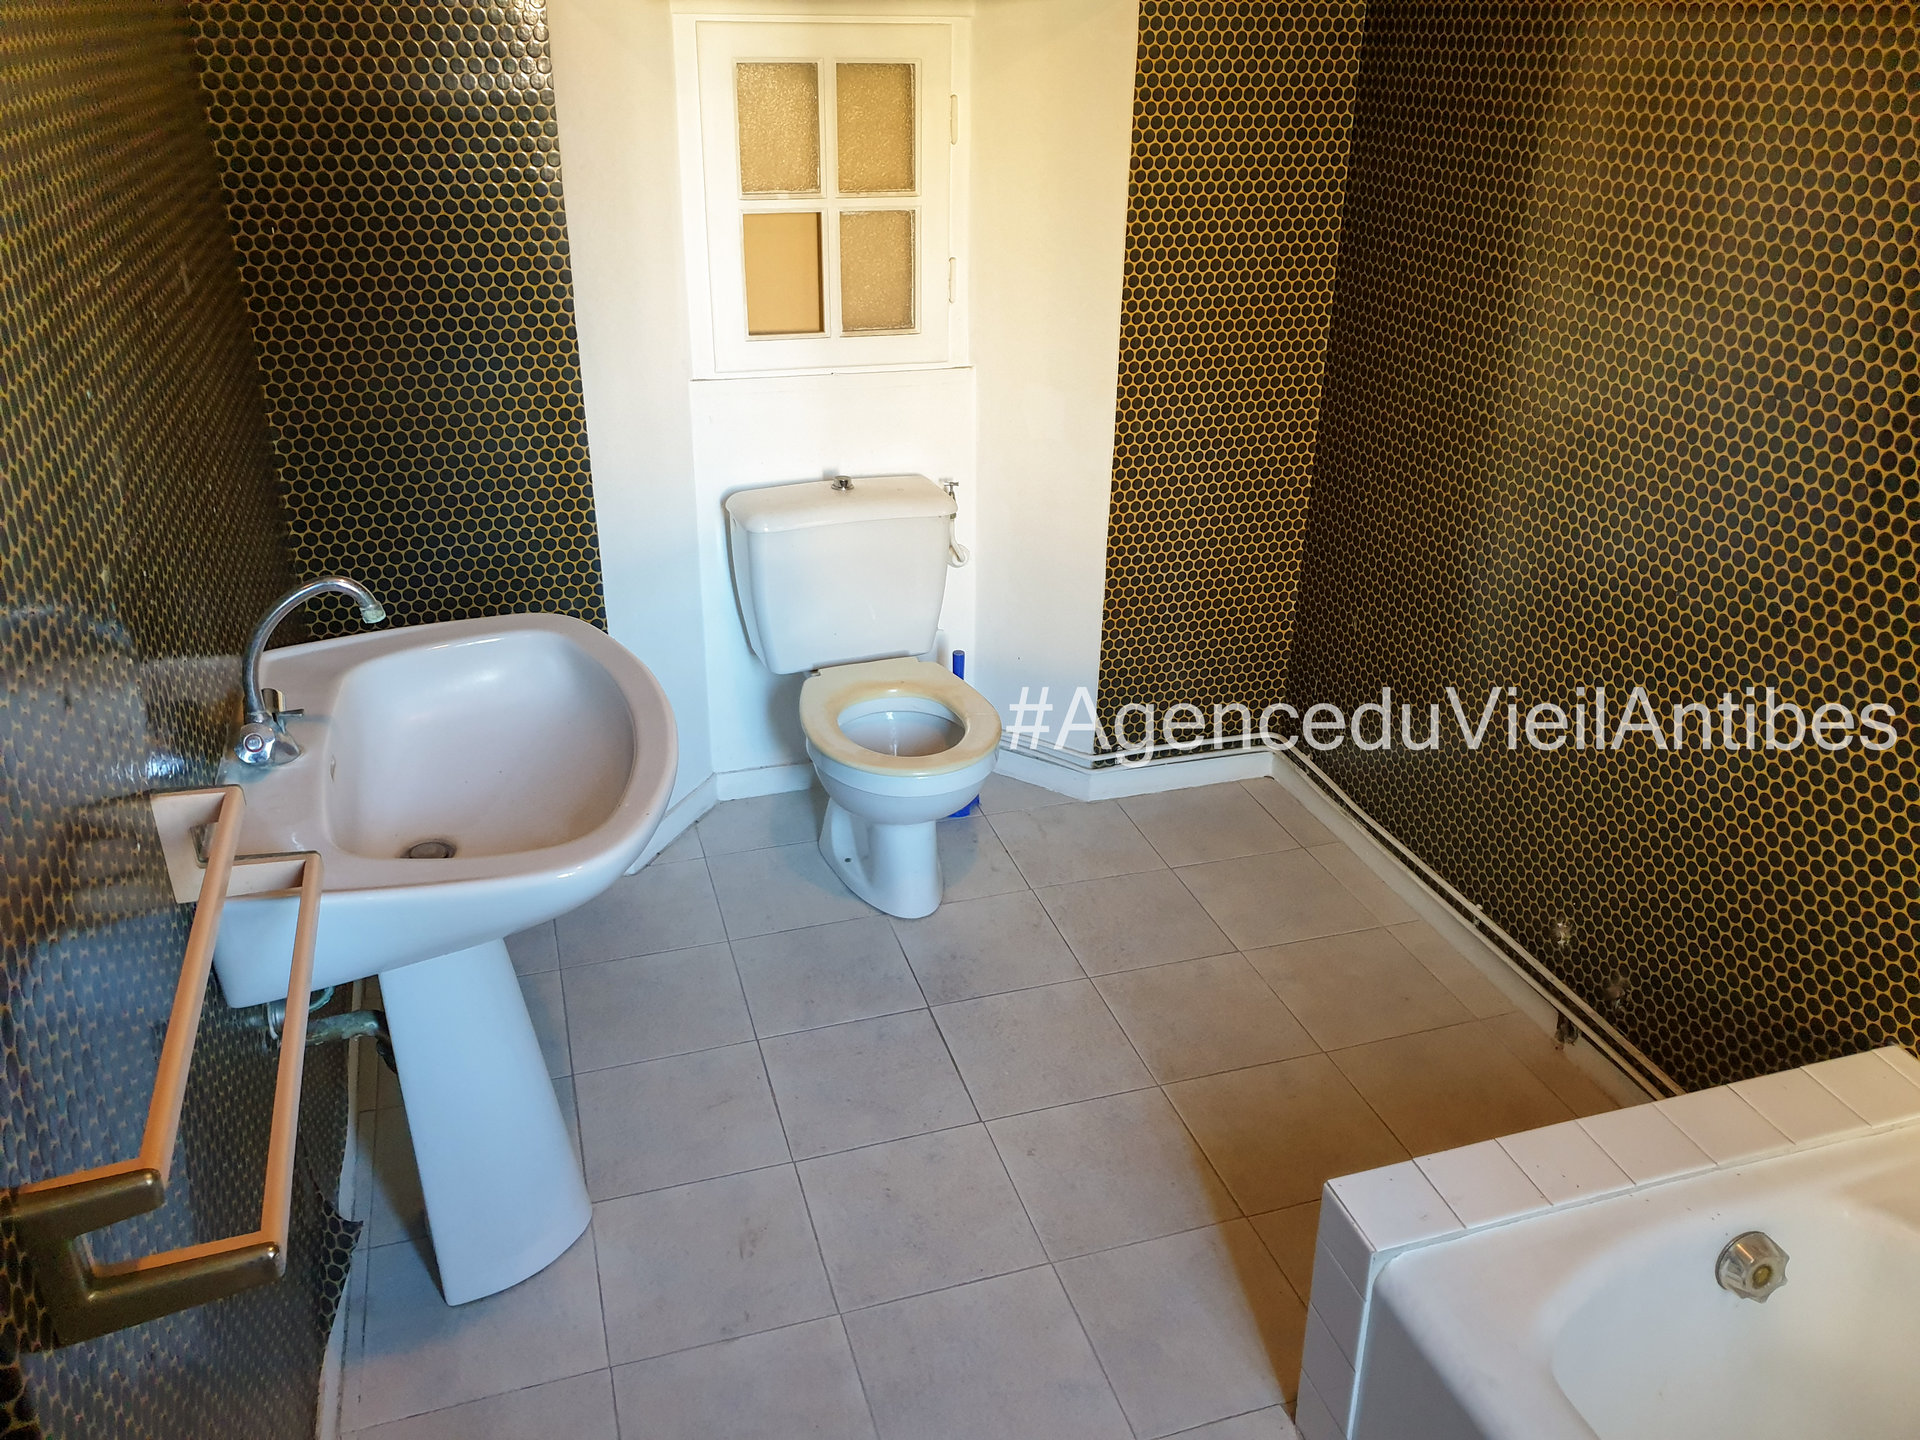 2p 3p 4p Antibes Immobilier Maison de village Old town Antibes Vieil Antibes appartement ancien appartement de caractère pierres apparentes port vauban poutre apparente village house